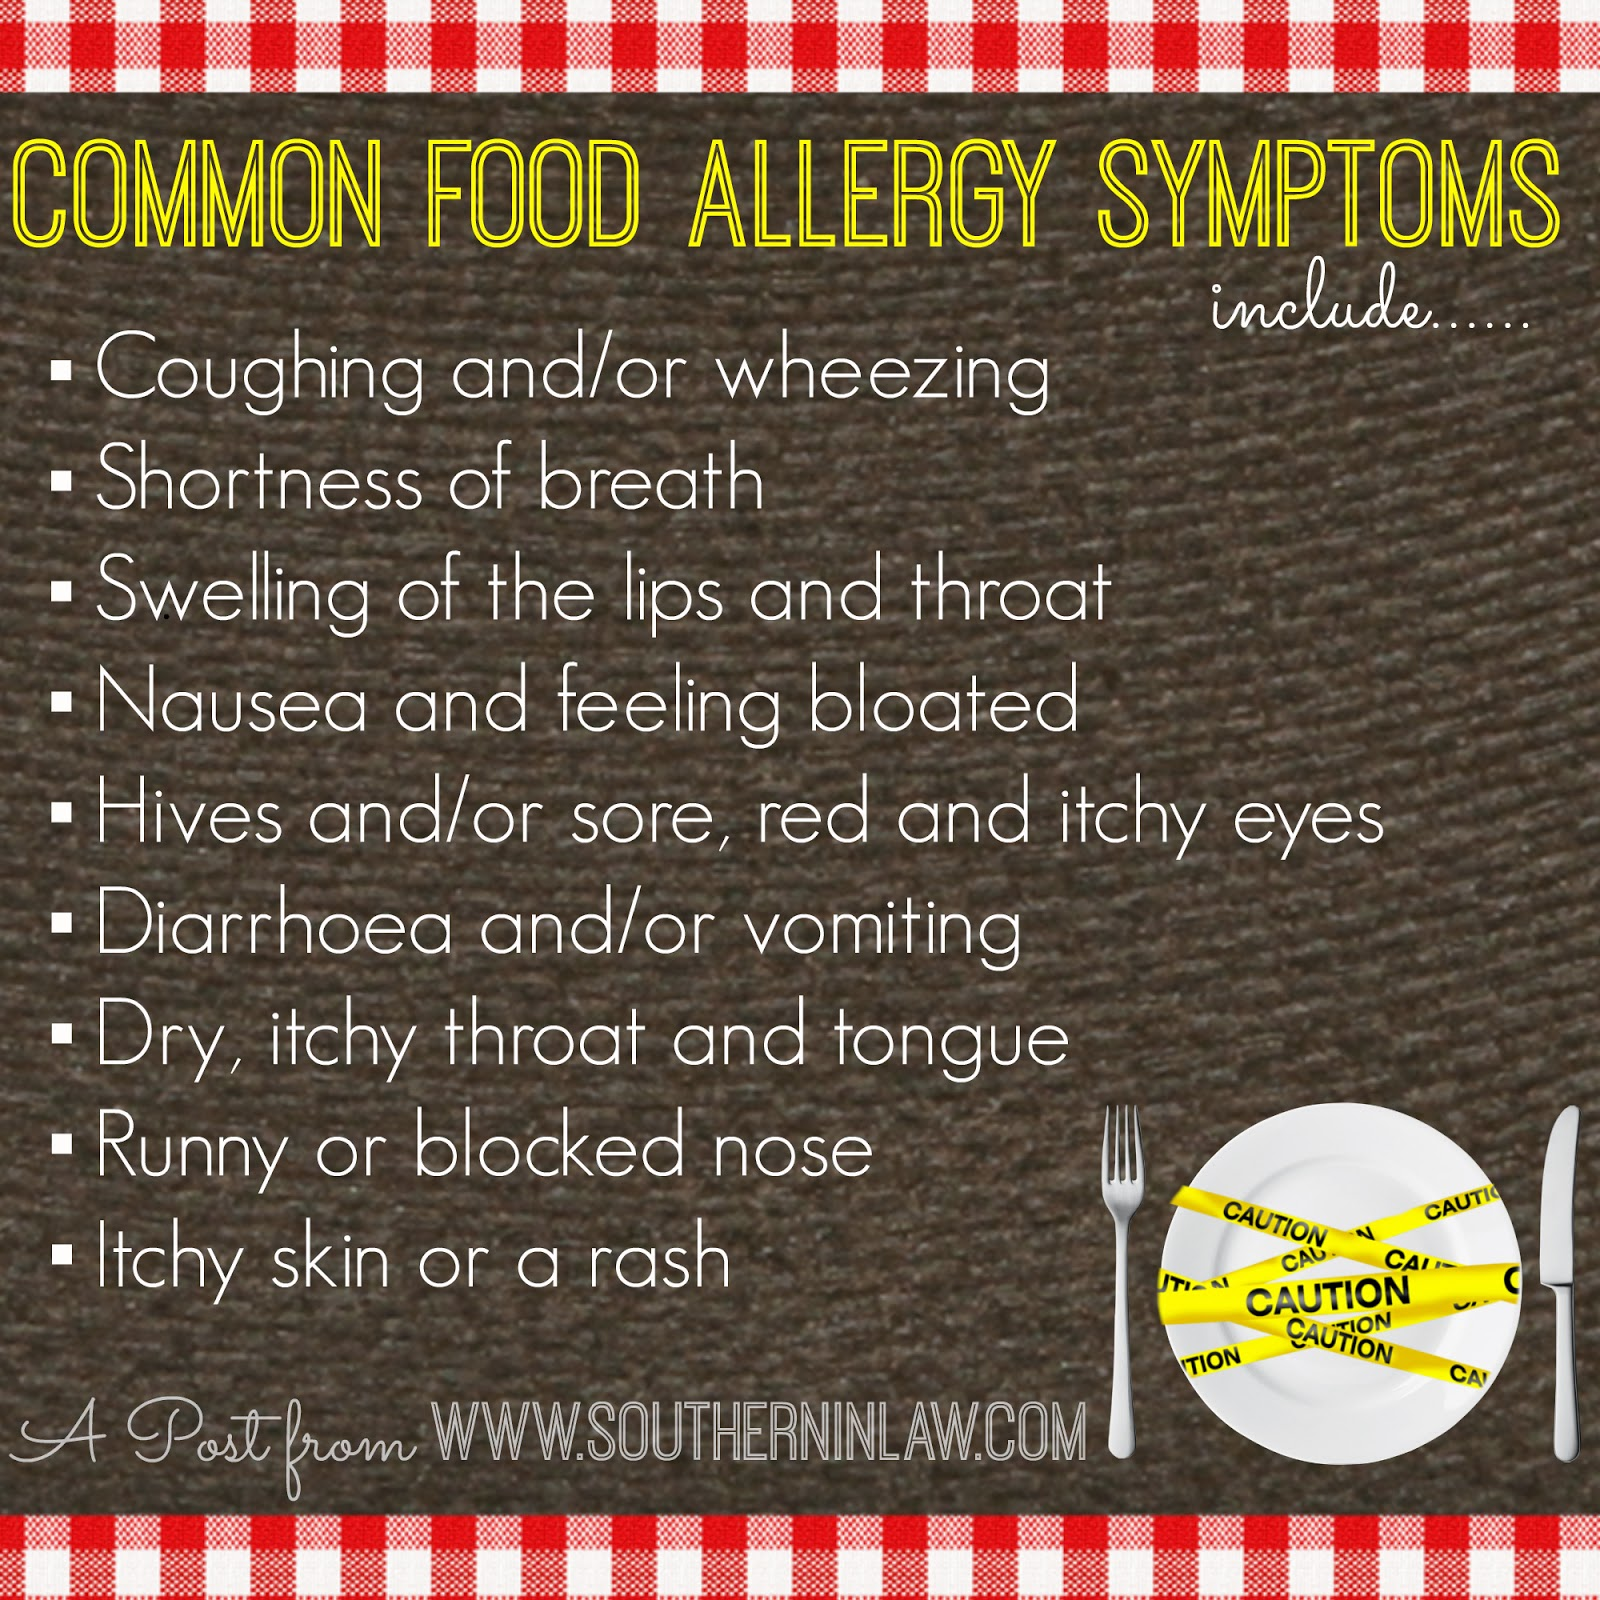 Common food allergy symptoms - The difference between food allergies and intolerances